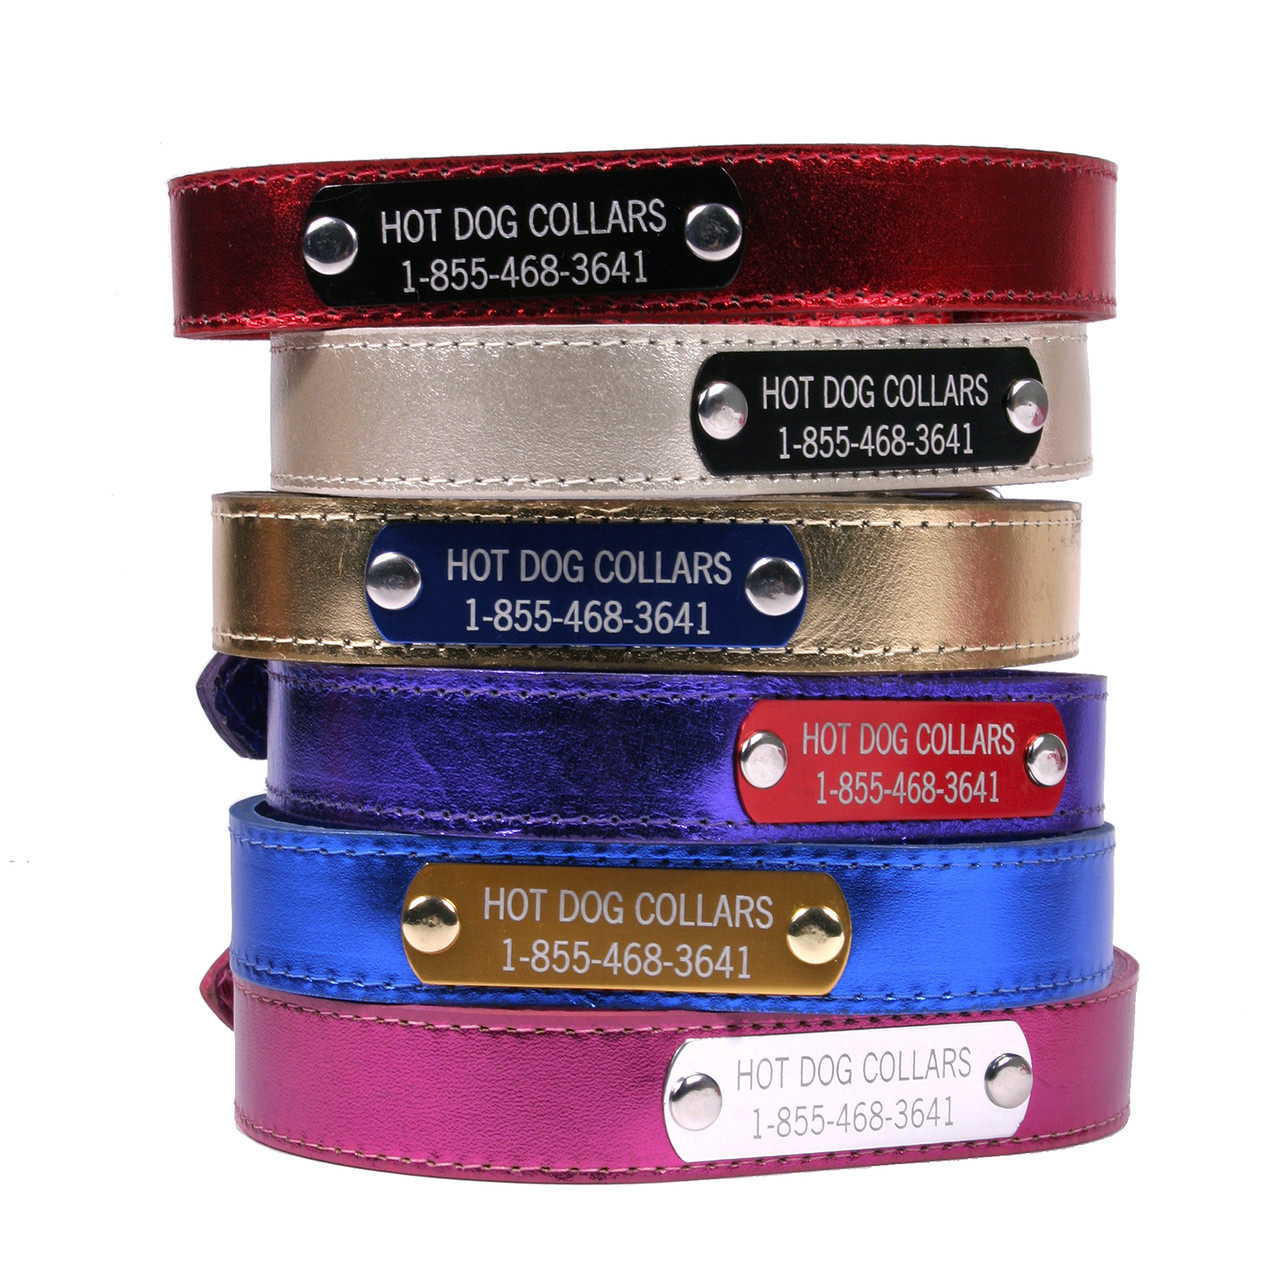 Leather Dog Collar Custom Dog Collar Personalized Leather Pet ID tag Dog Collars Name plate Engraved ID For Boy and Girl Dogs